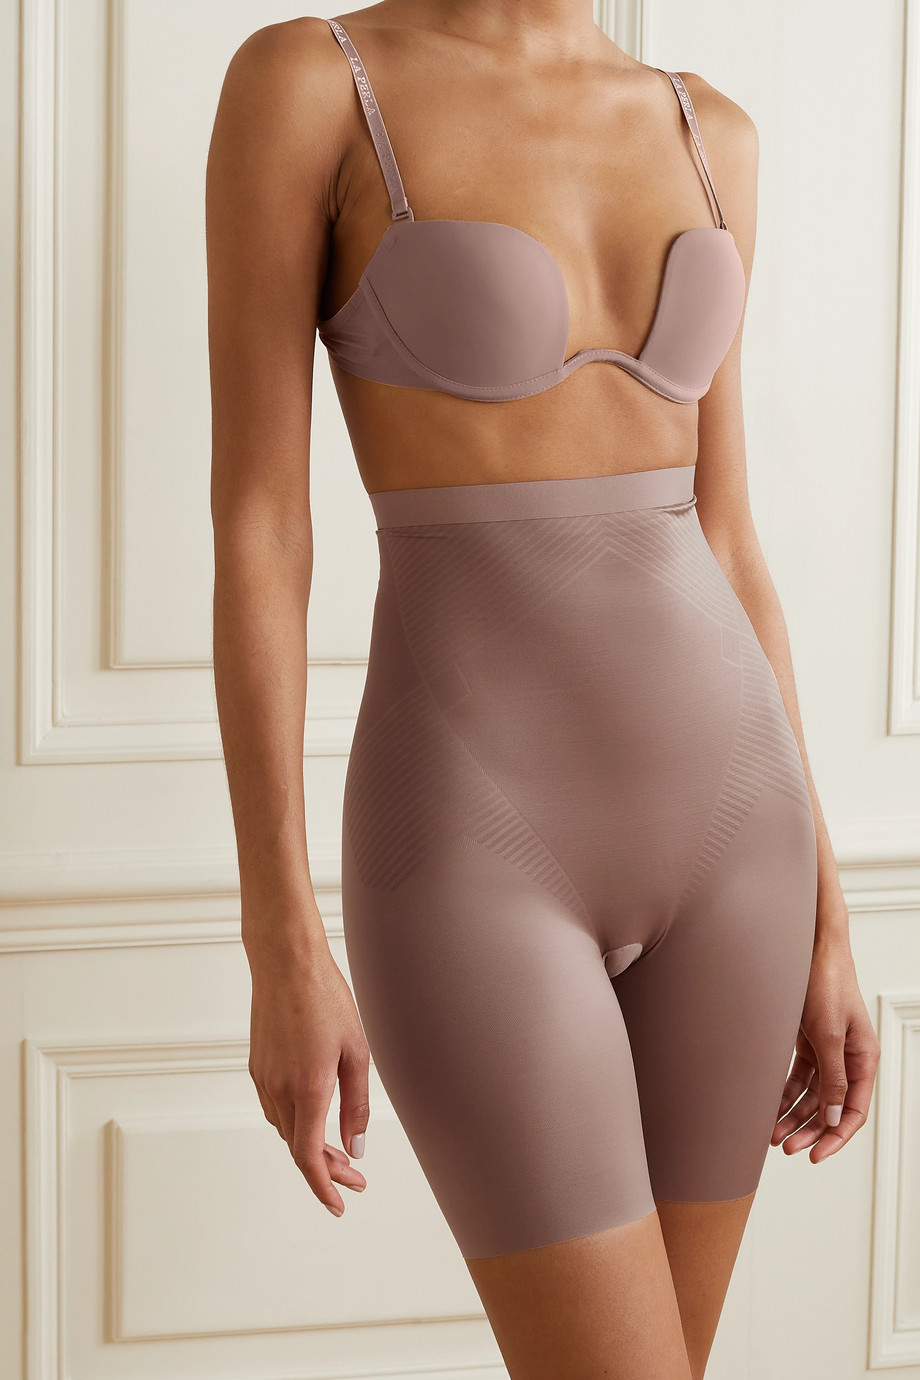 Spanx Short galbant taille haute Thinstincts 2.0